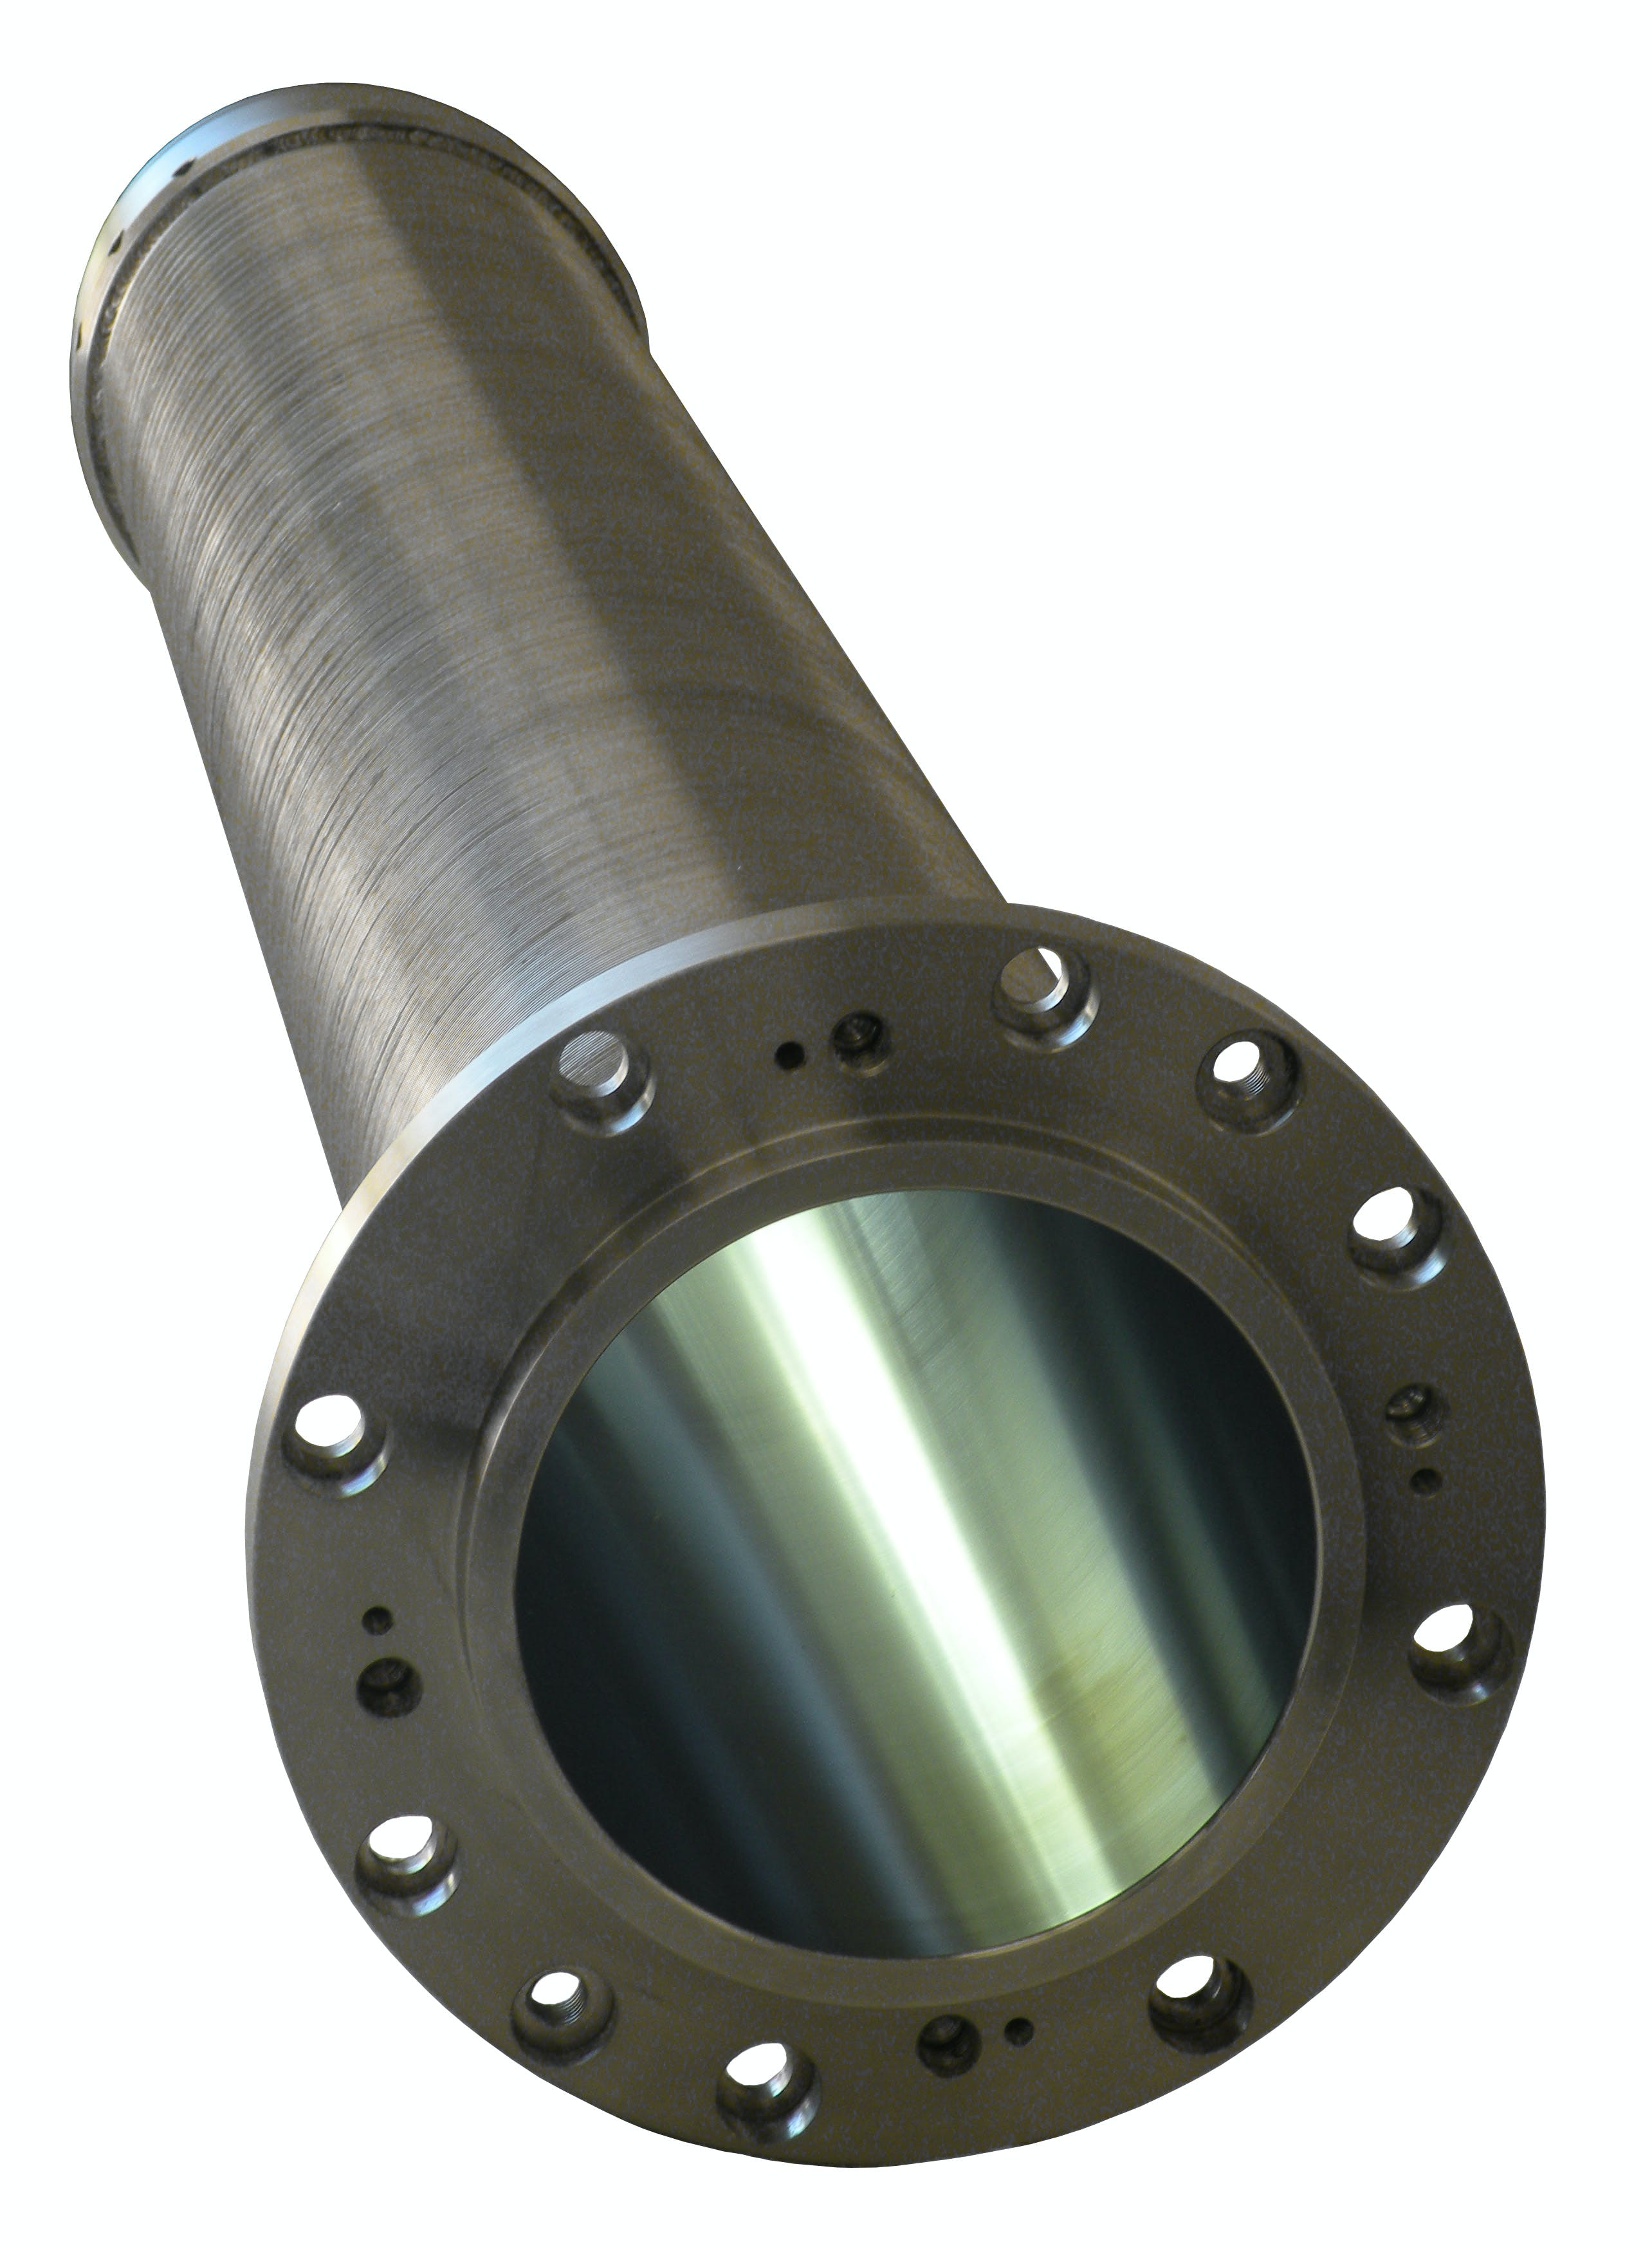 Scraped Surface Heat Exchangers--Barrels, Tubes and Cylinders - sold by Litre Service Inc.